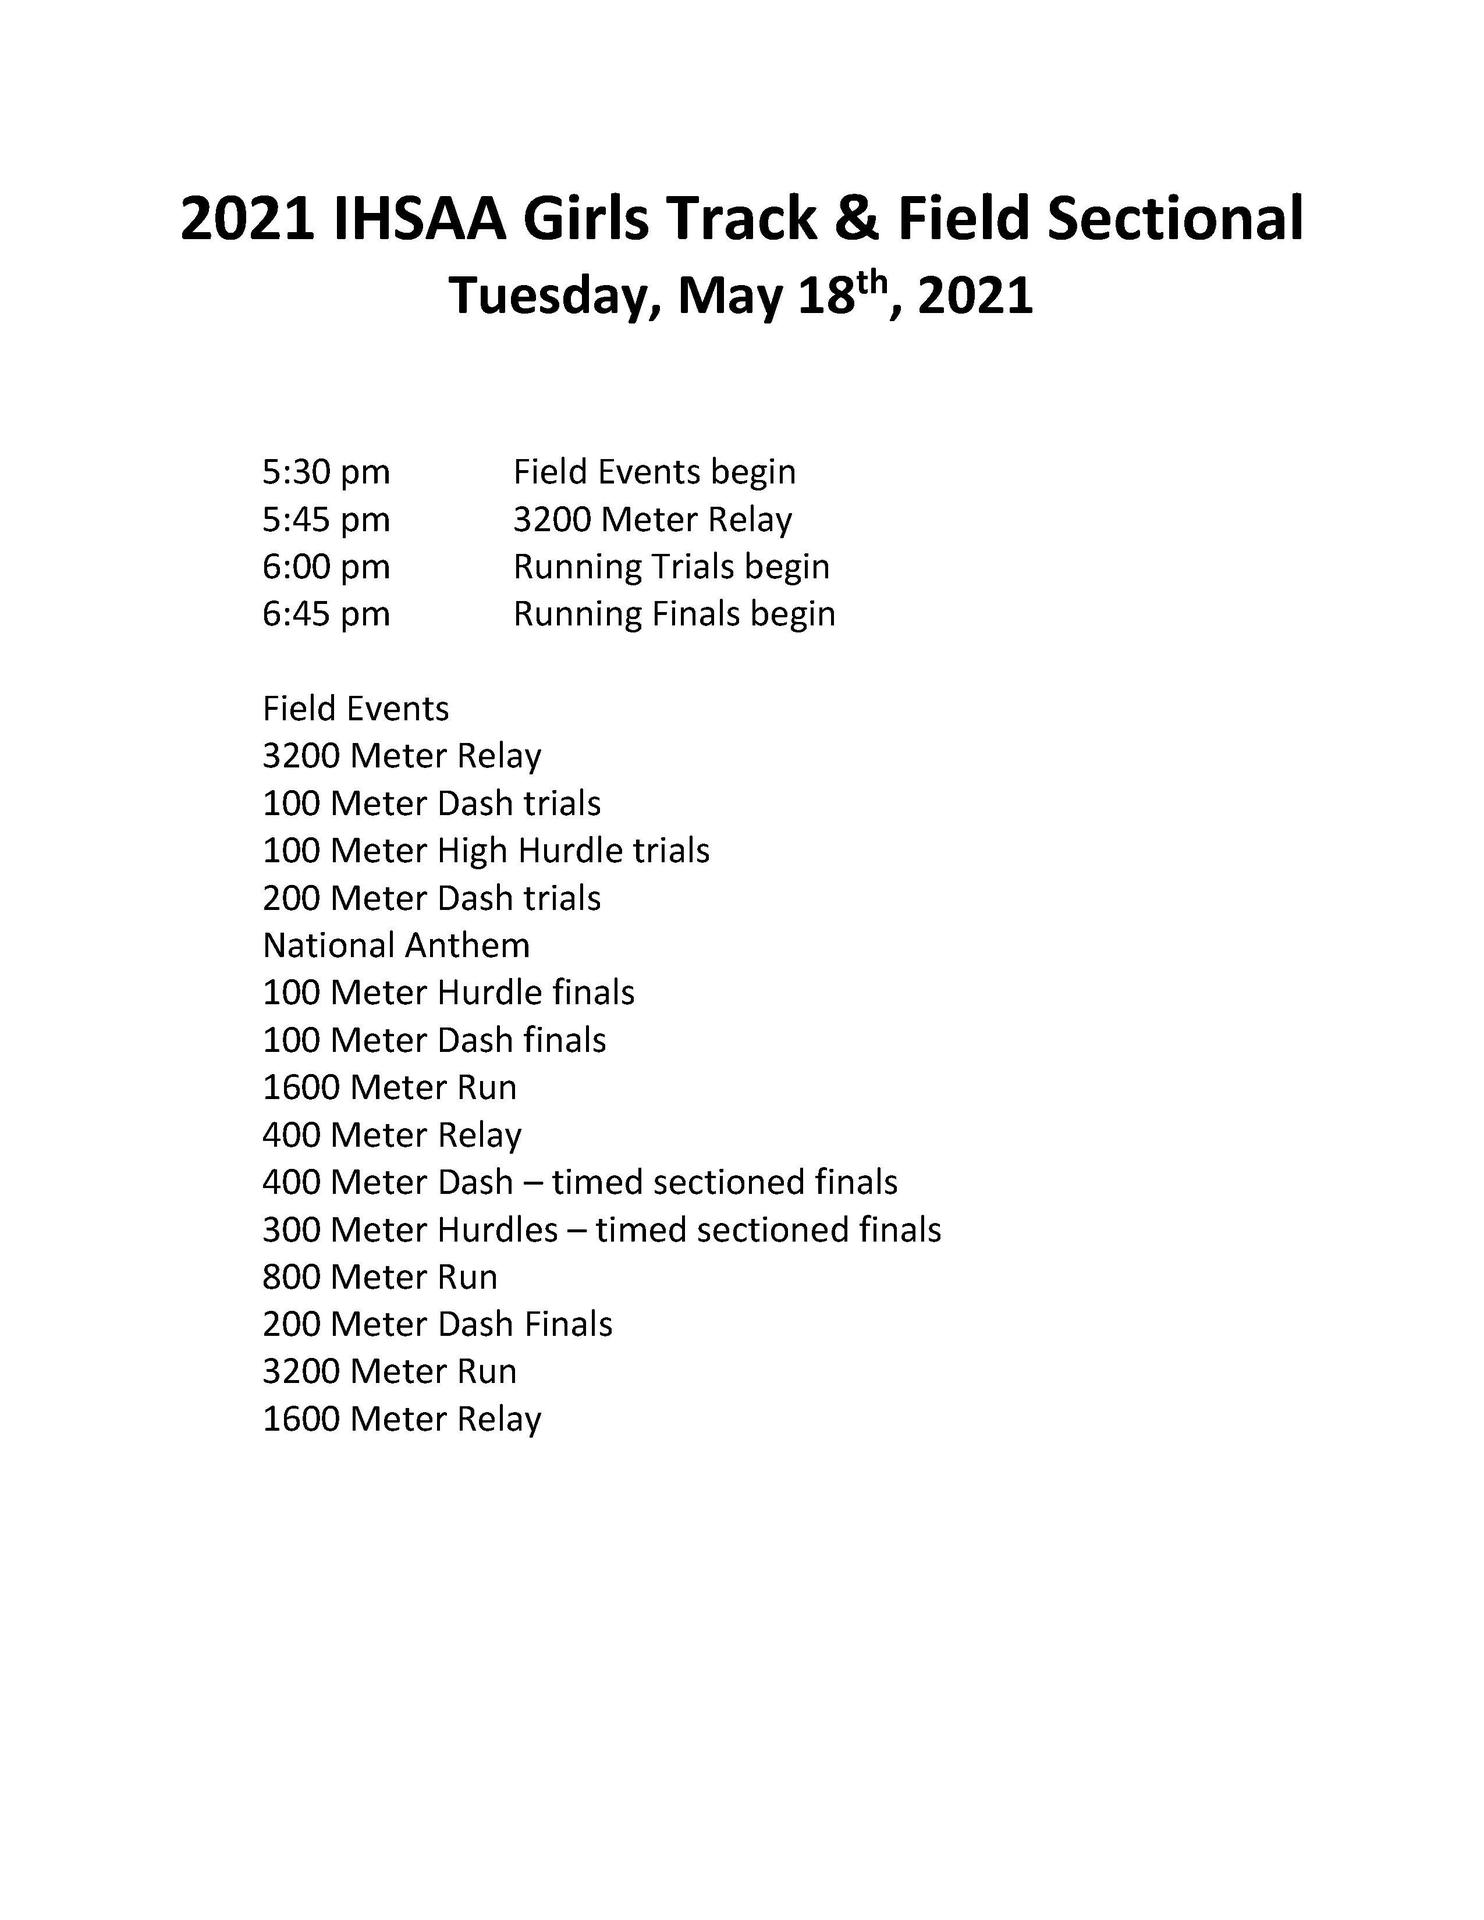 Girls Track Sectionals